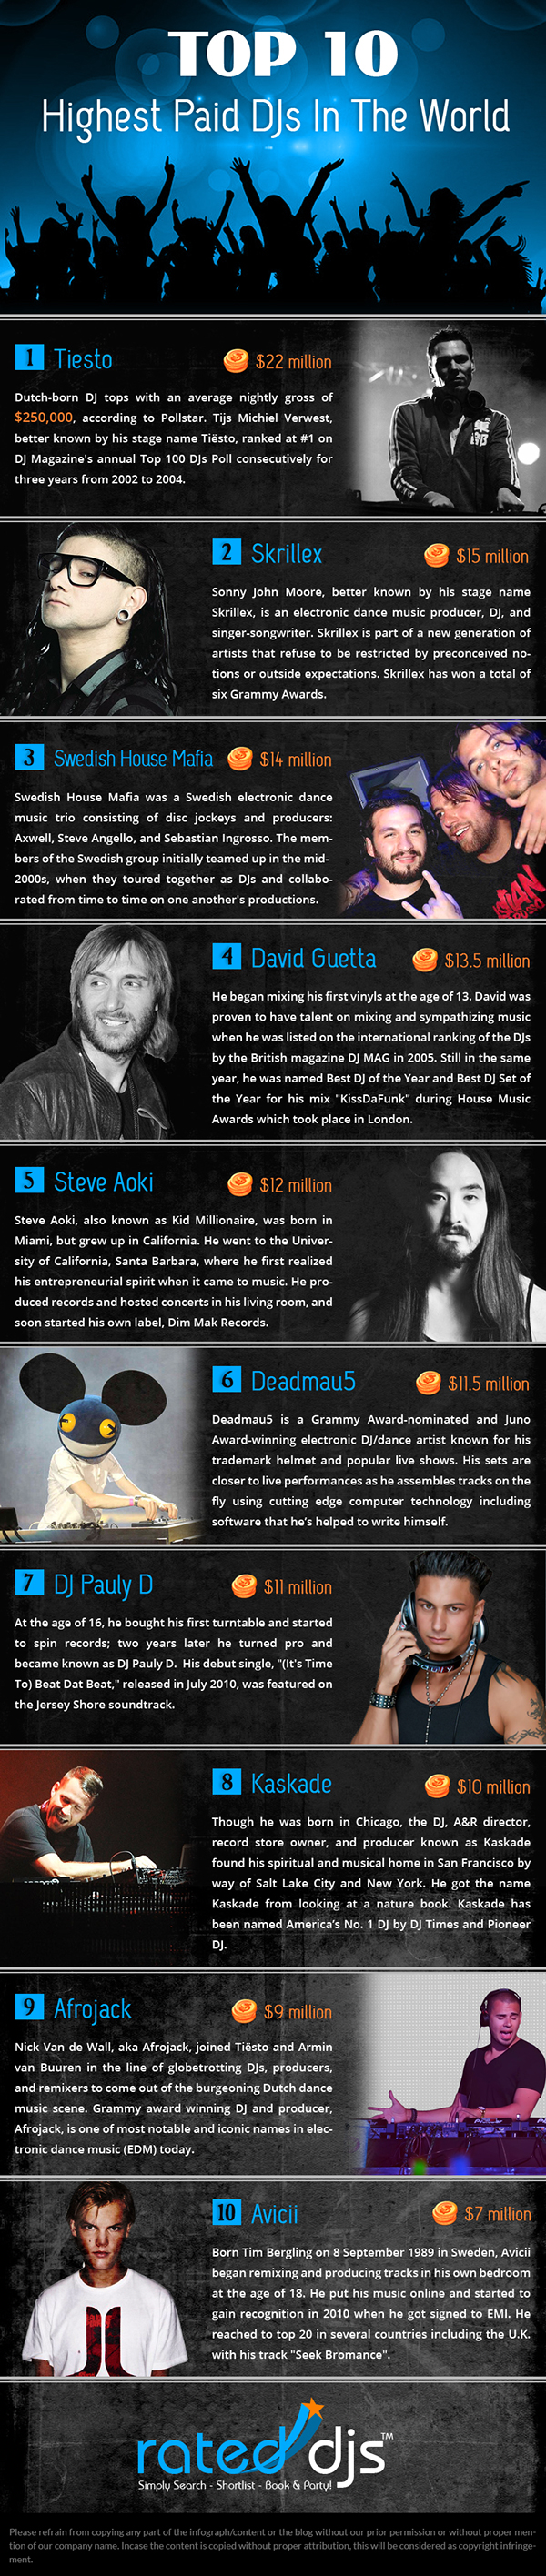 Top 10 Highest Paid DJs In The World [Infographic]